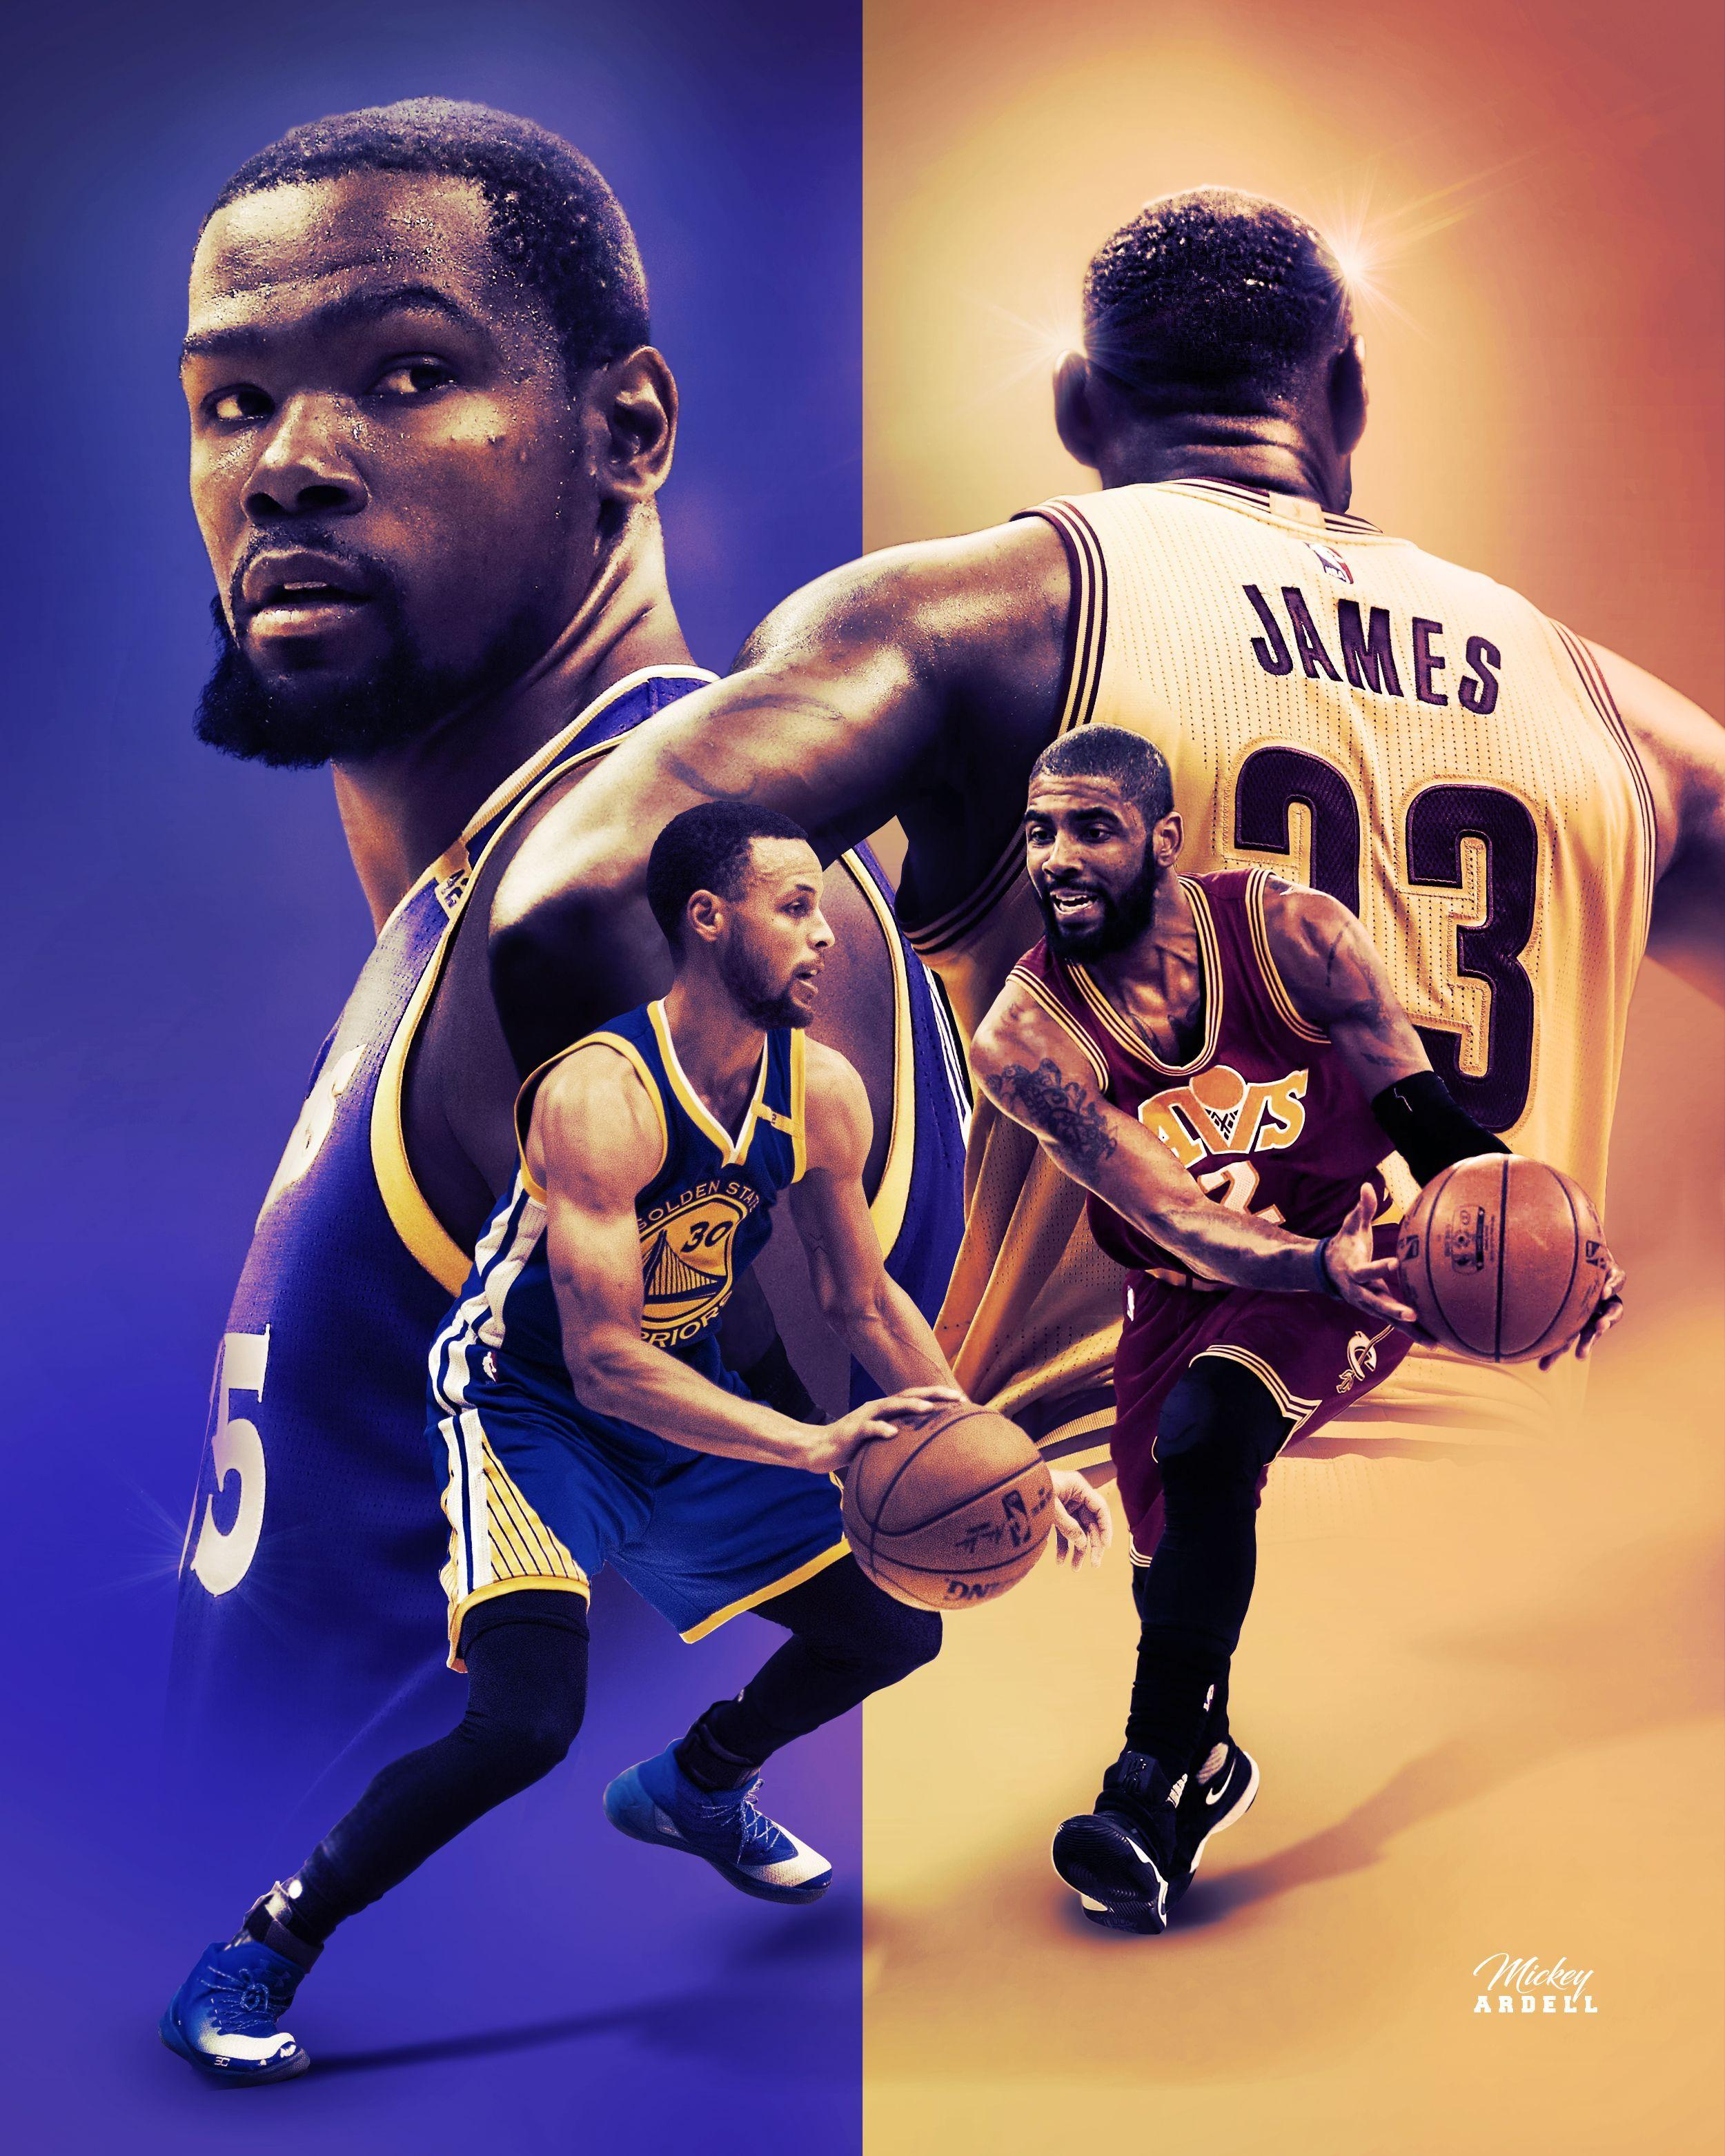 Steph Curry And Kyrie Irving Wallpapers Wallpaper Cave